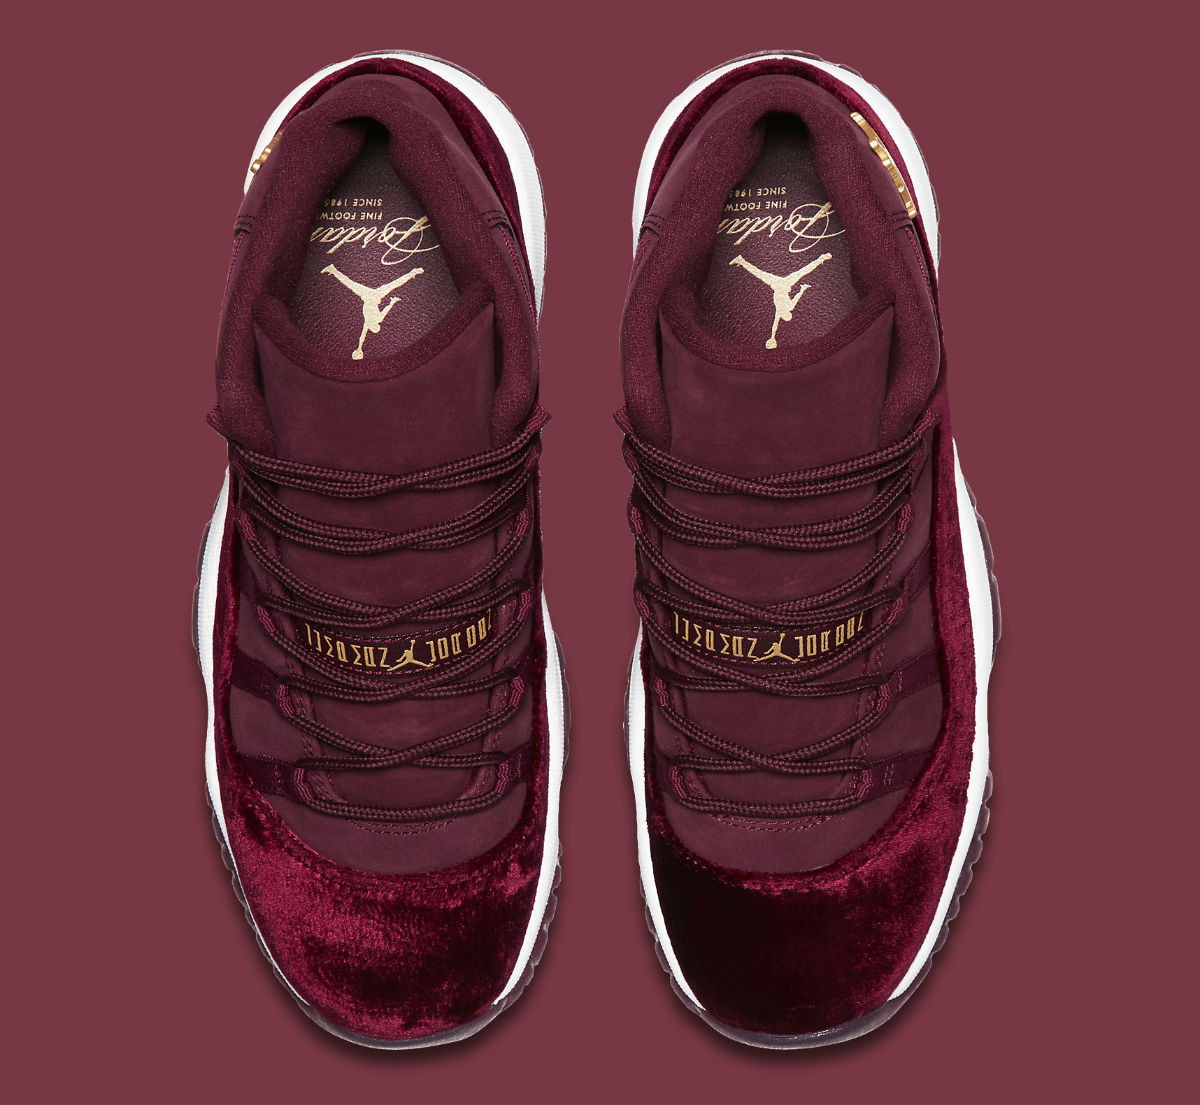 new concept 86b13 62e19 Air Jordan 11 GG Red Velvet Heiress Release Date Top 852625-650